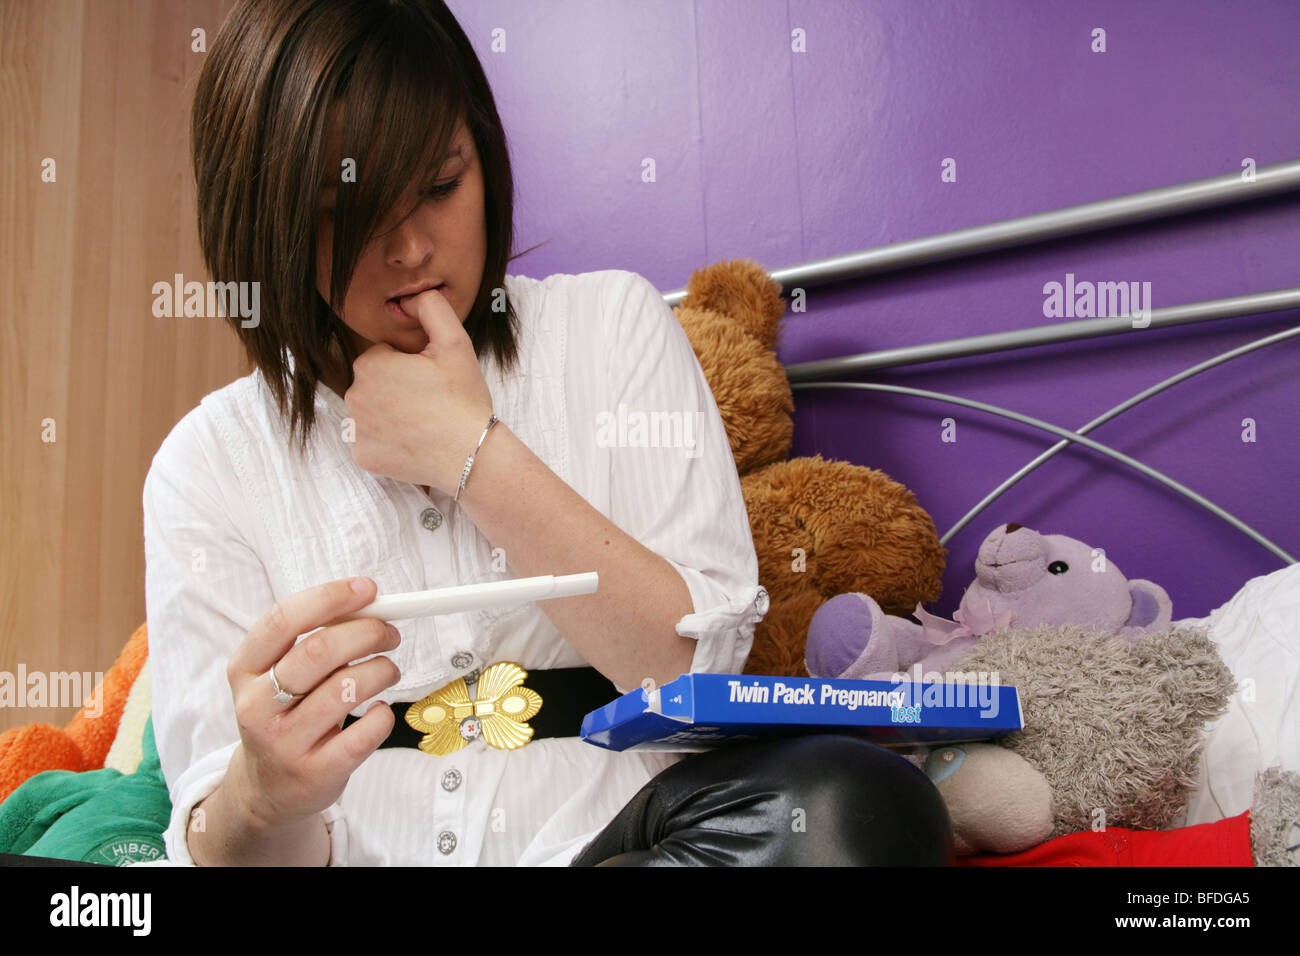 Young woman sitting on her bed checking a pregnancy tester - Stock Image